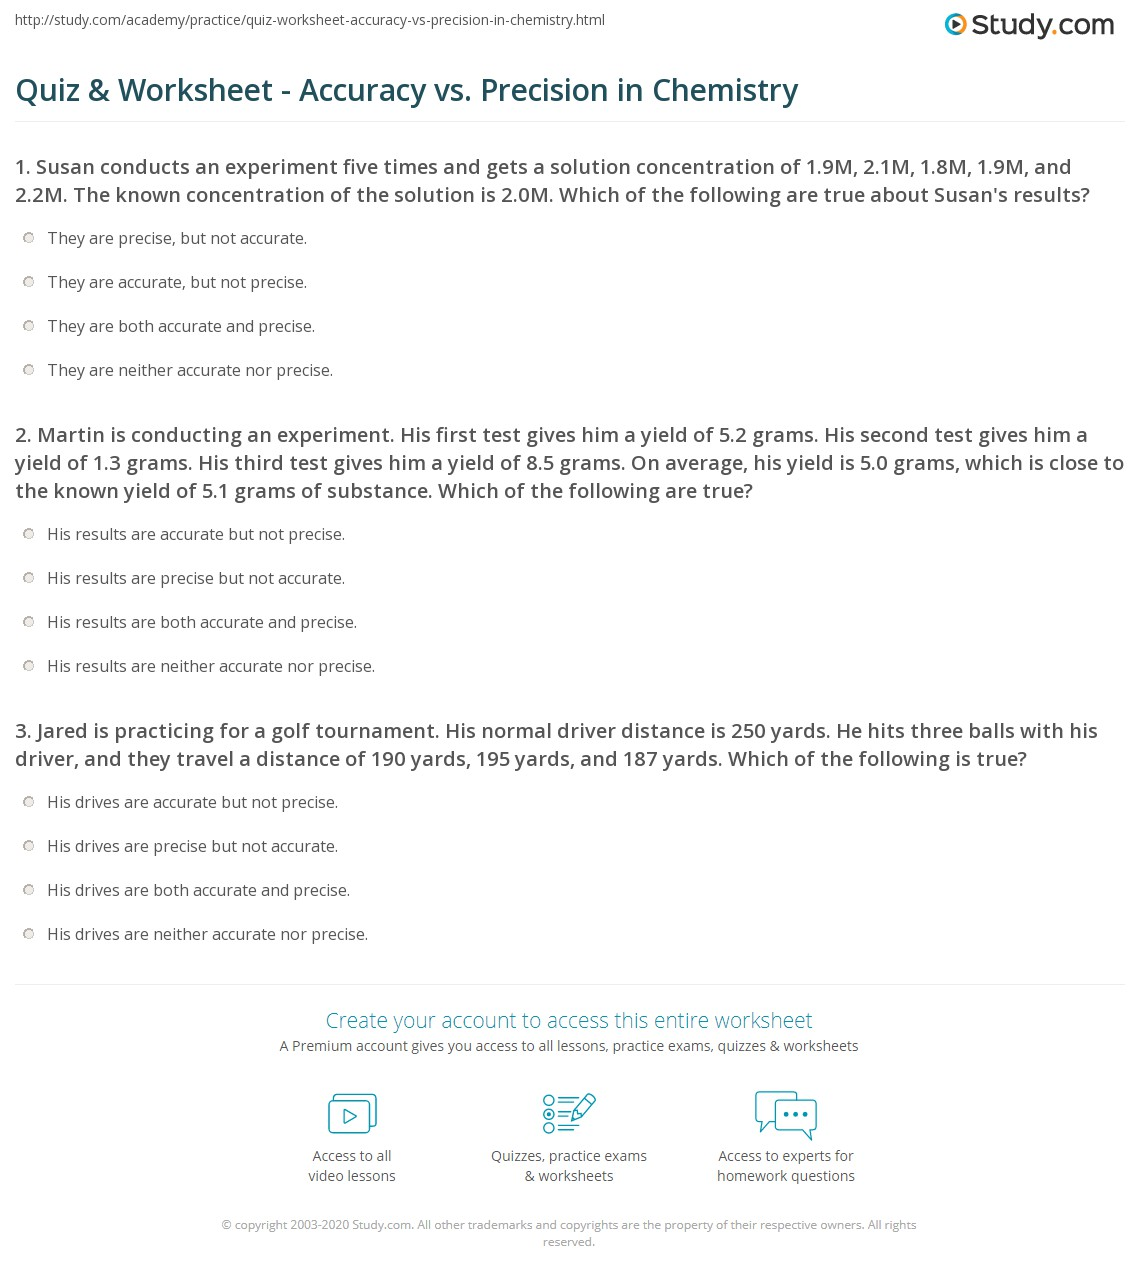 Worksheets Accuracy And Precision Worksheet quiz worksheet accuracy vs precision in chemistry study com 1 martin is conducting an experiment his first test gives him a yield of 5 2 grams second 3 grams